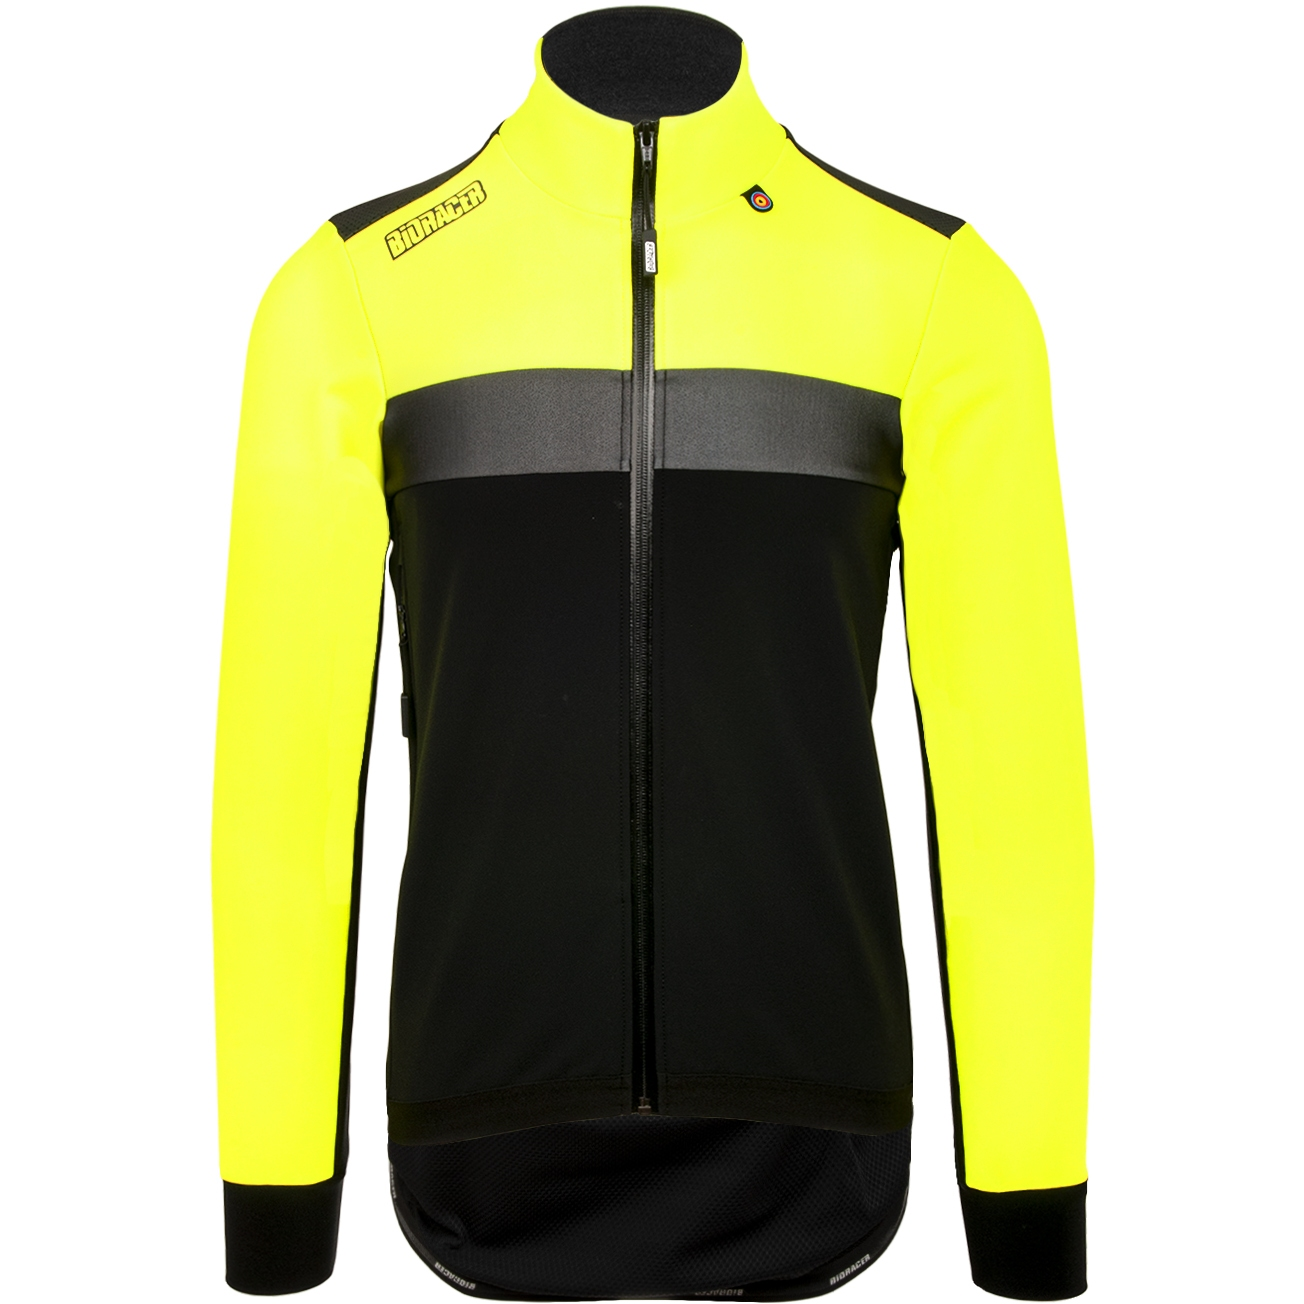 Bioracer Spitfire Tempest Protect Winter Jacket Subli Fluo - fluo yellow